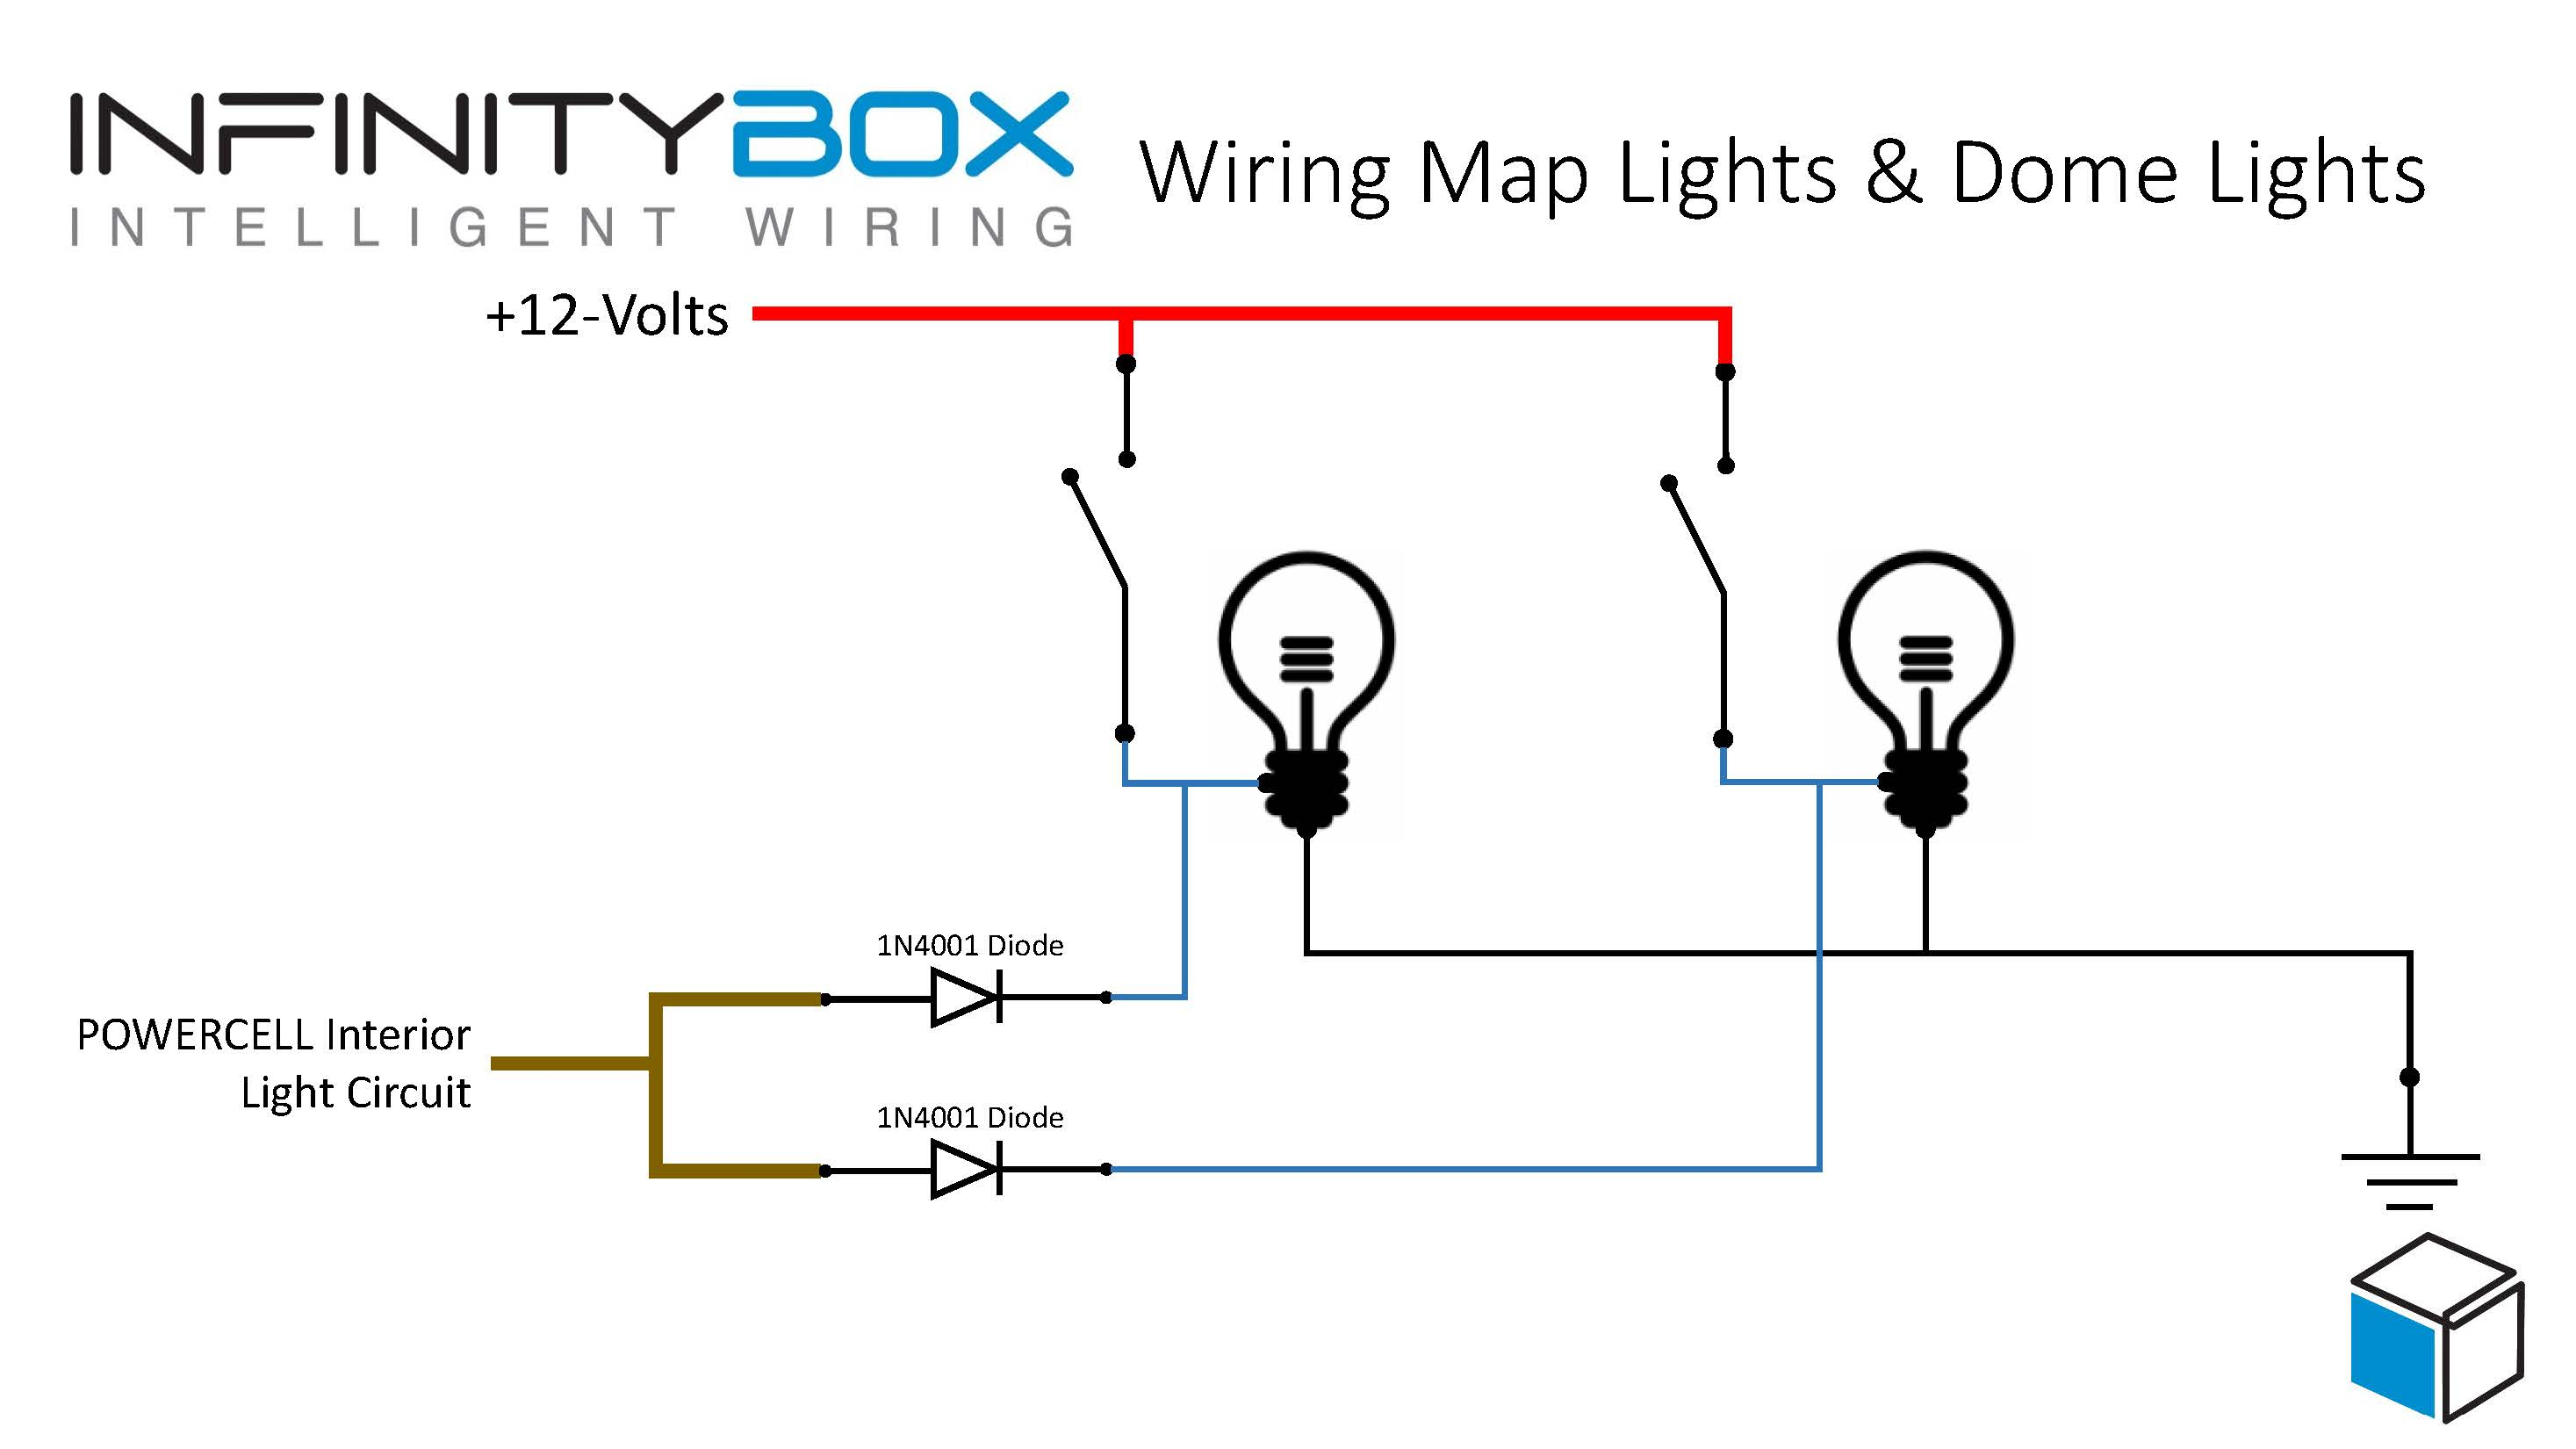 Club Car Light Kit Wiring Diagram | Wiring Library - Club Car Precedent Light Kit Wiring Diagram